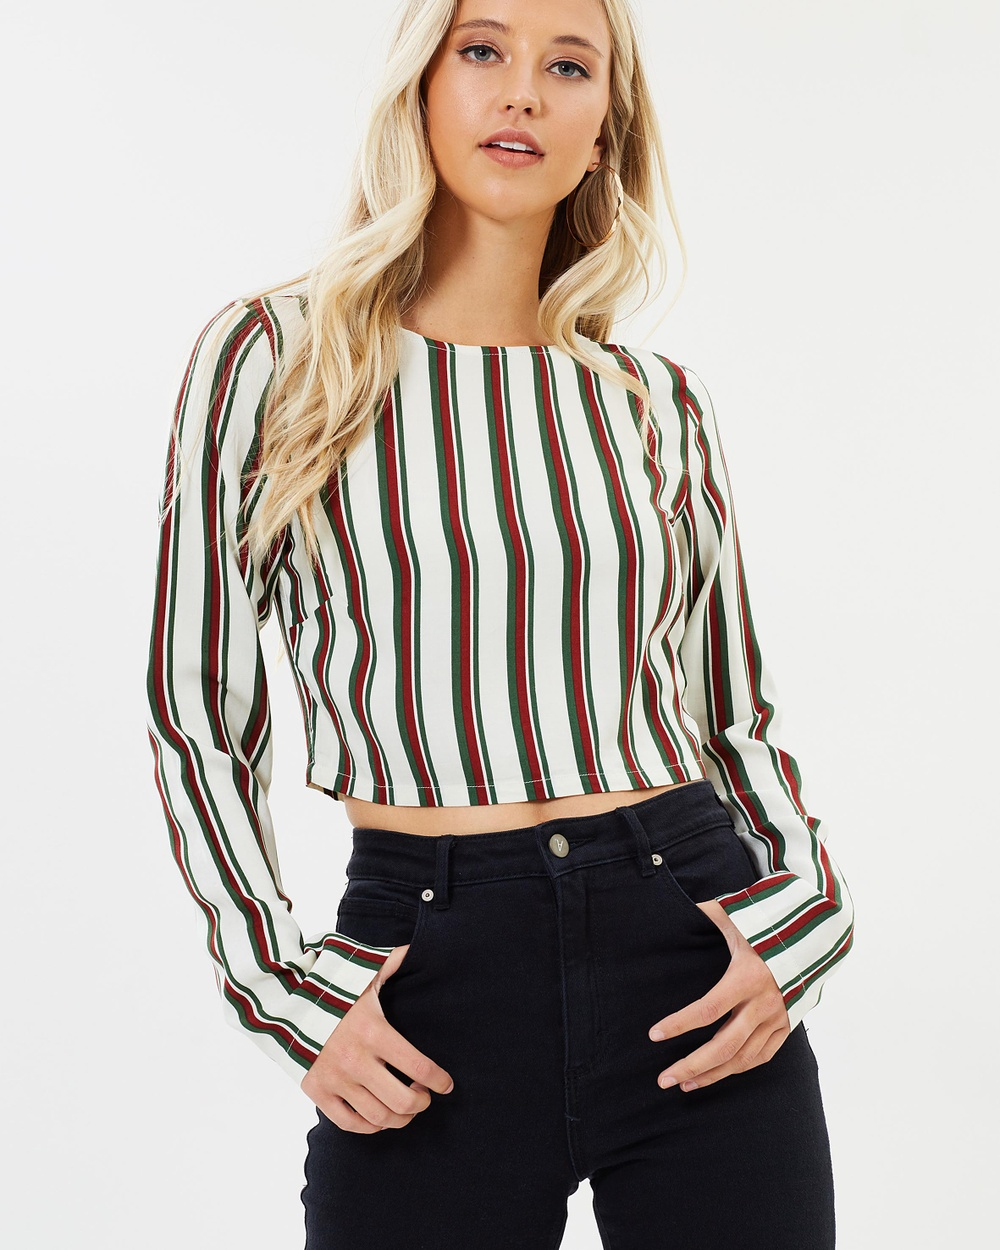 Dazie Great Heights Long Sleeve Top Cropped tops Double Stripe Great Heights Long Sleeve Top